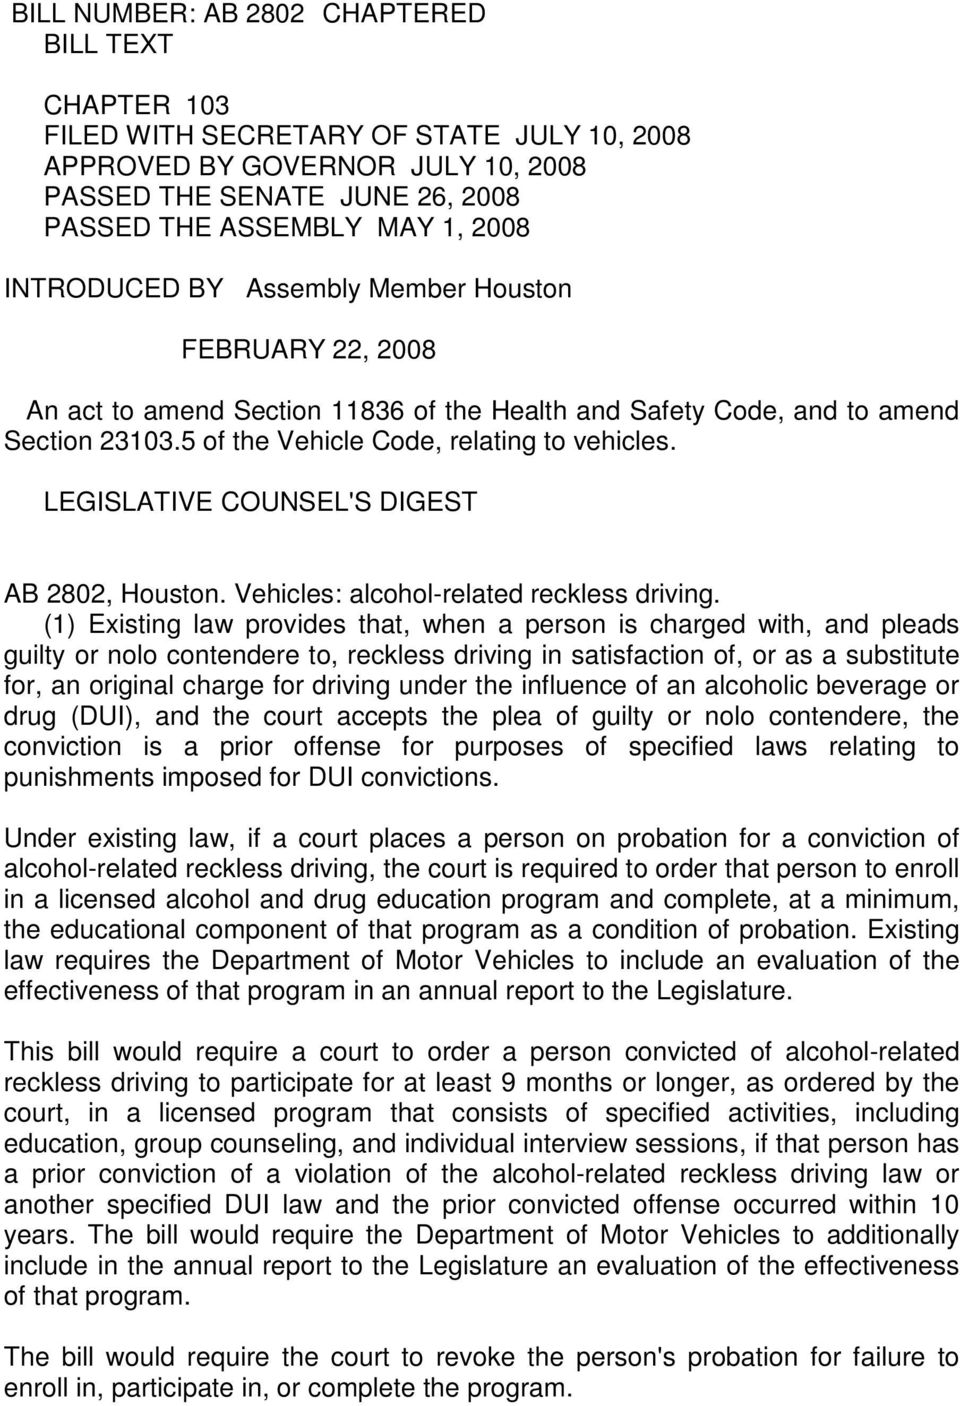 LEGISLATIVE COUNSEL'S DIGEST AB 2802, Houston. Vehicles: alcohol-related reckless driving.